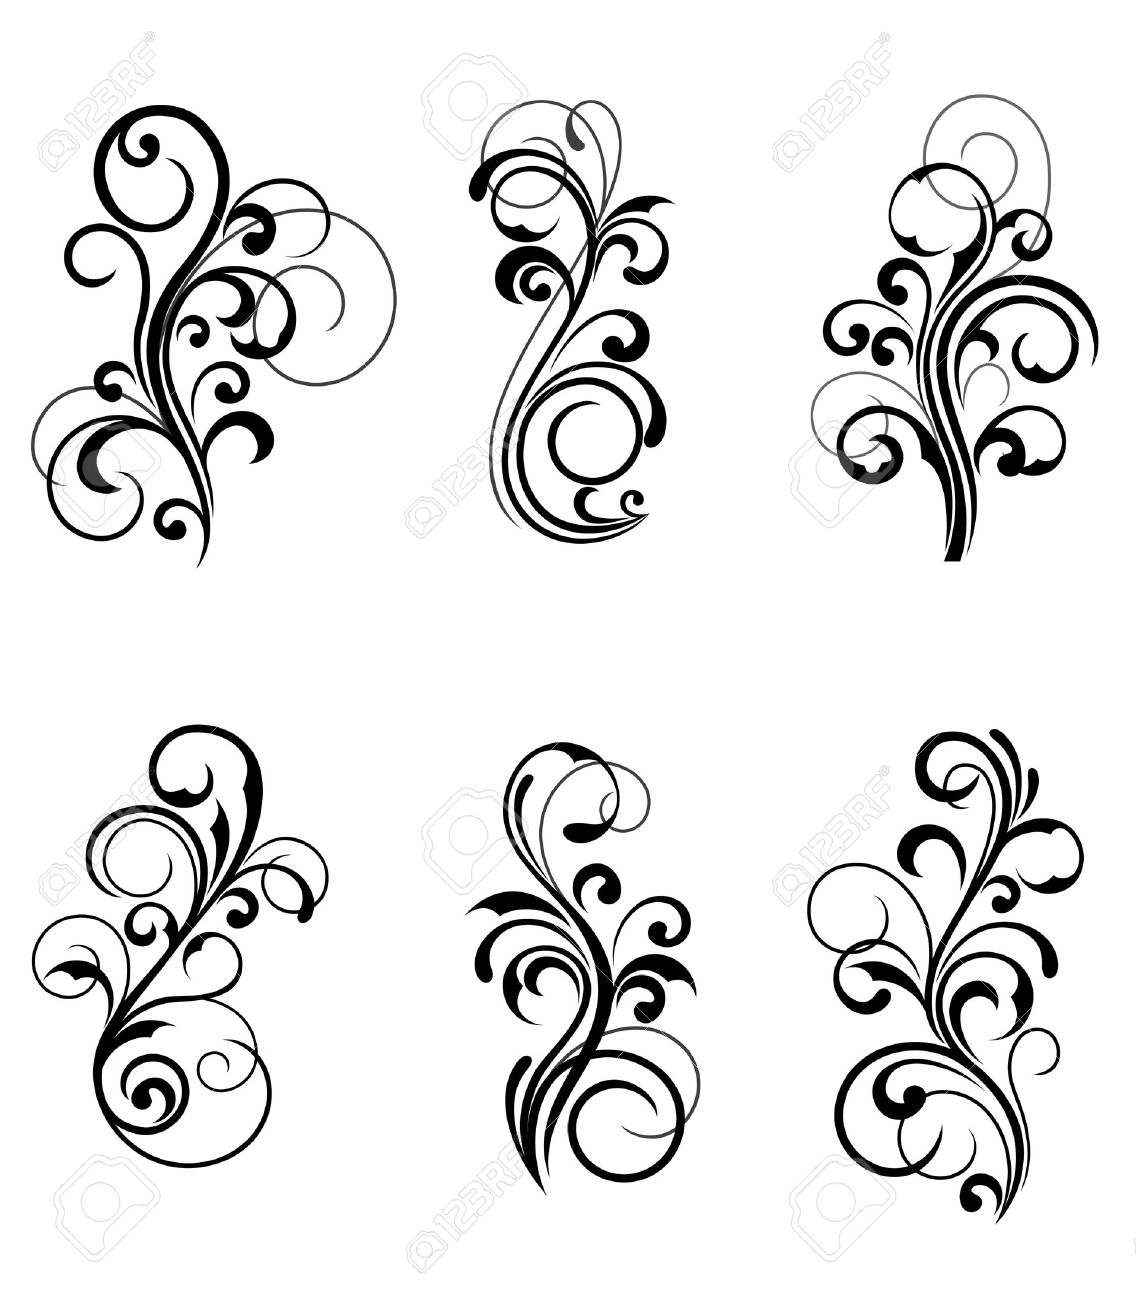 Floral patterns for design isolated on white Stock Vector - 7633709